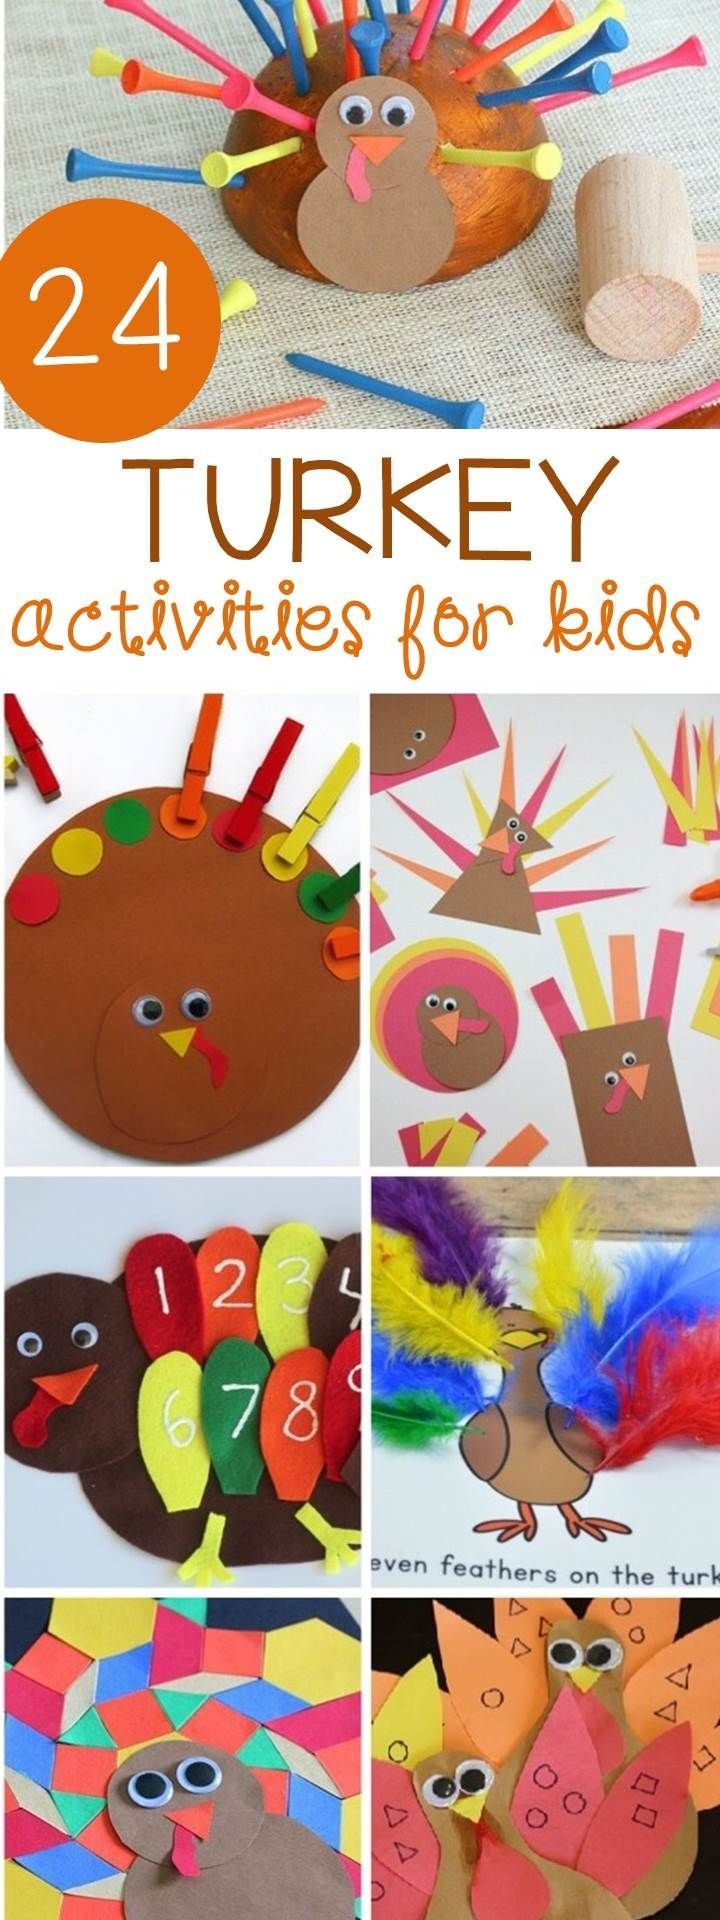 A Turkey For Thanksgiving Activities  24 Turkey Activities for Kids